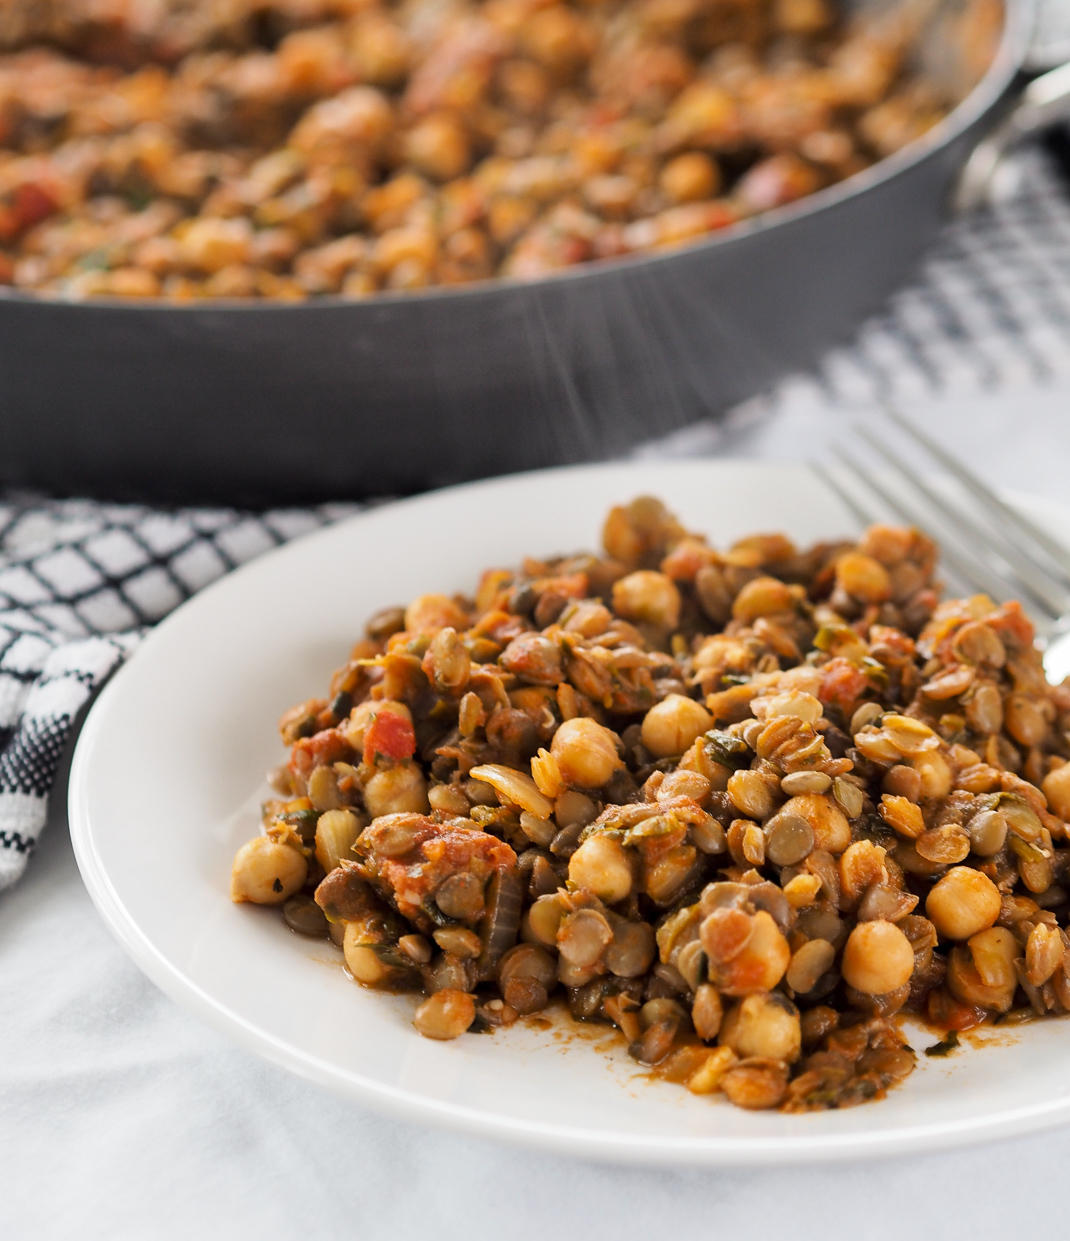 smokey lentil and chickpea stew